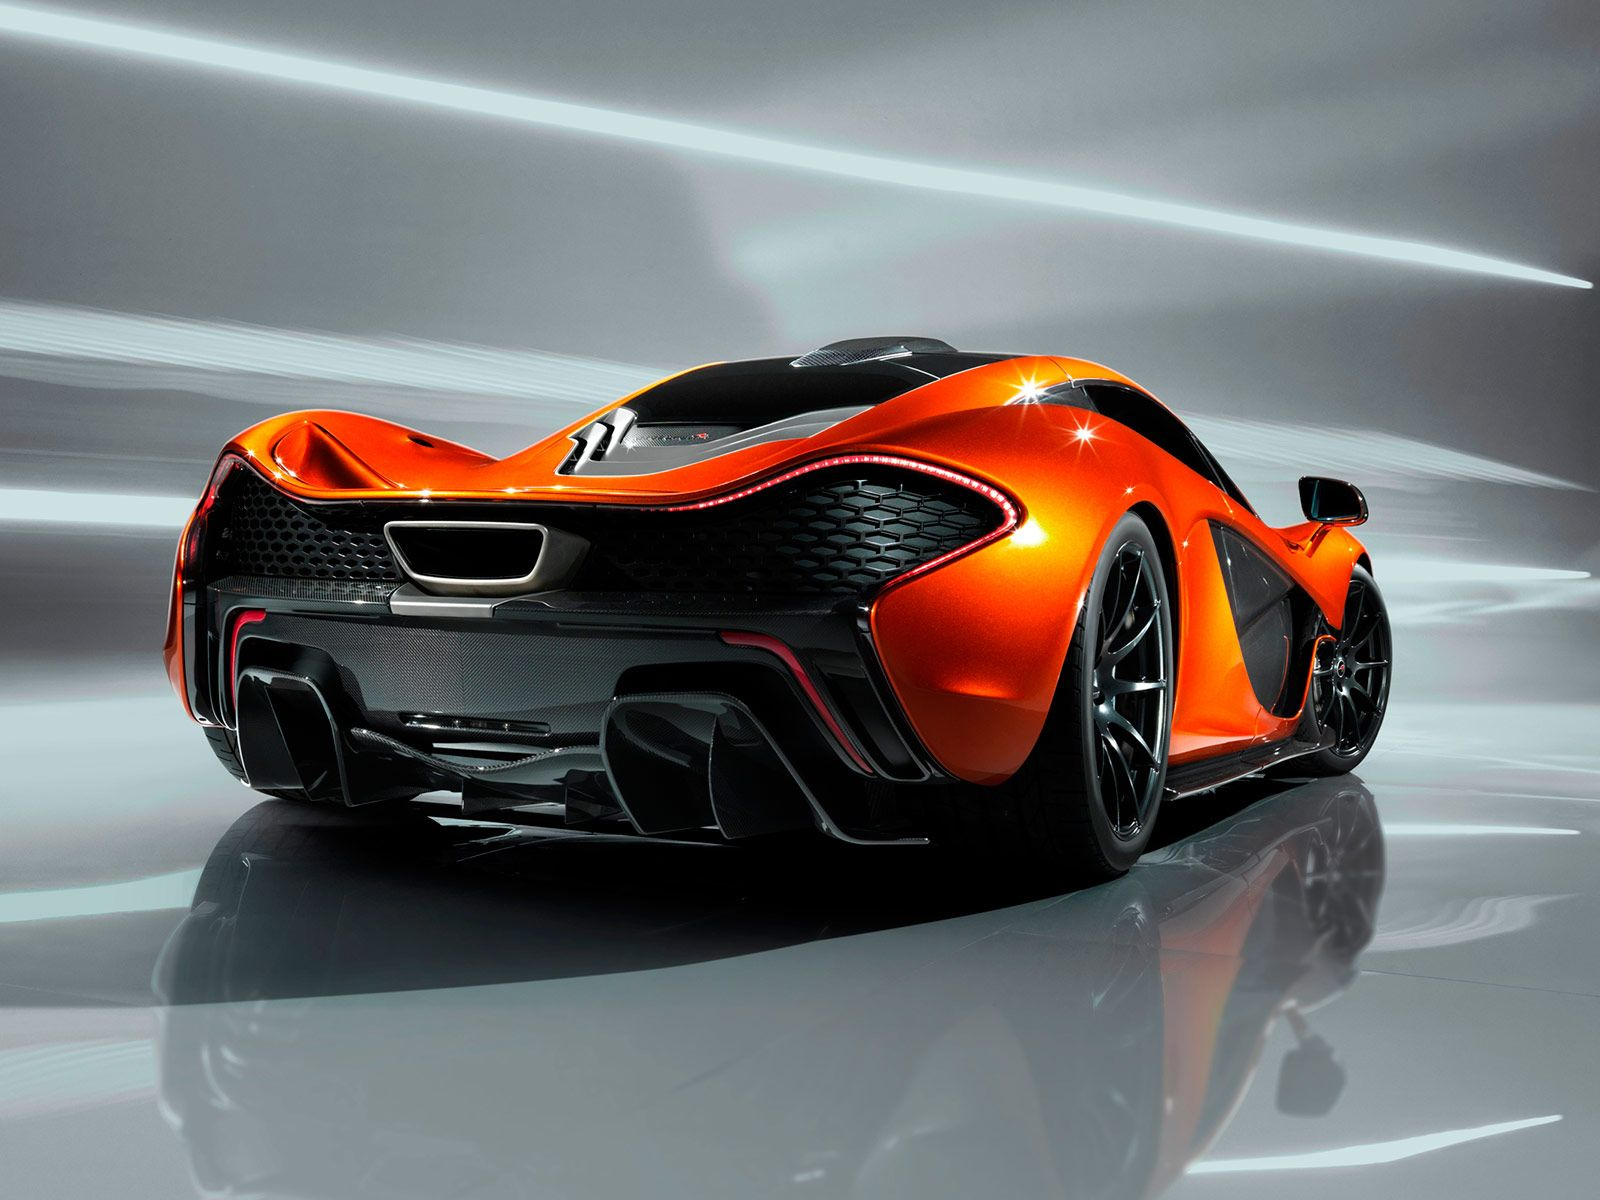 Fastest Car In The World Wallpapers 2015 1600x1200